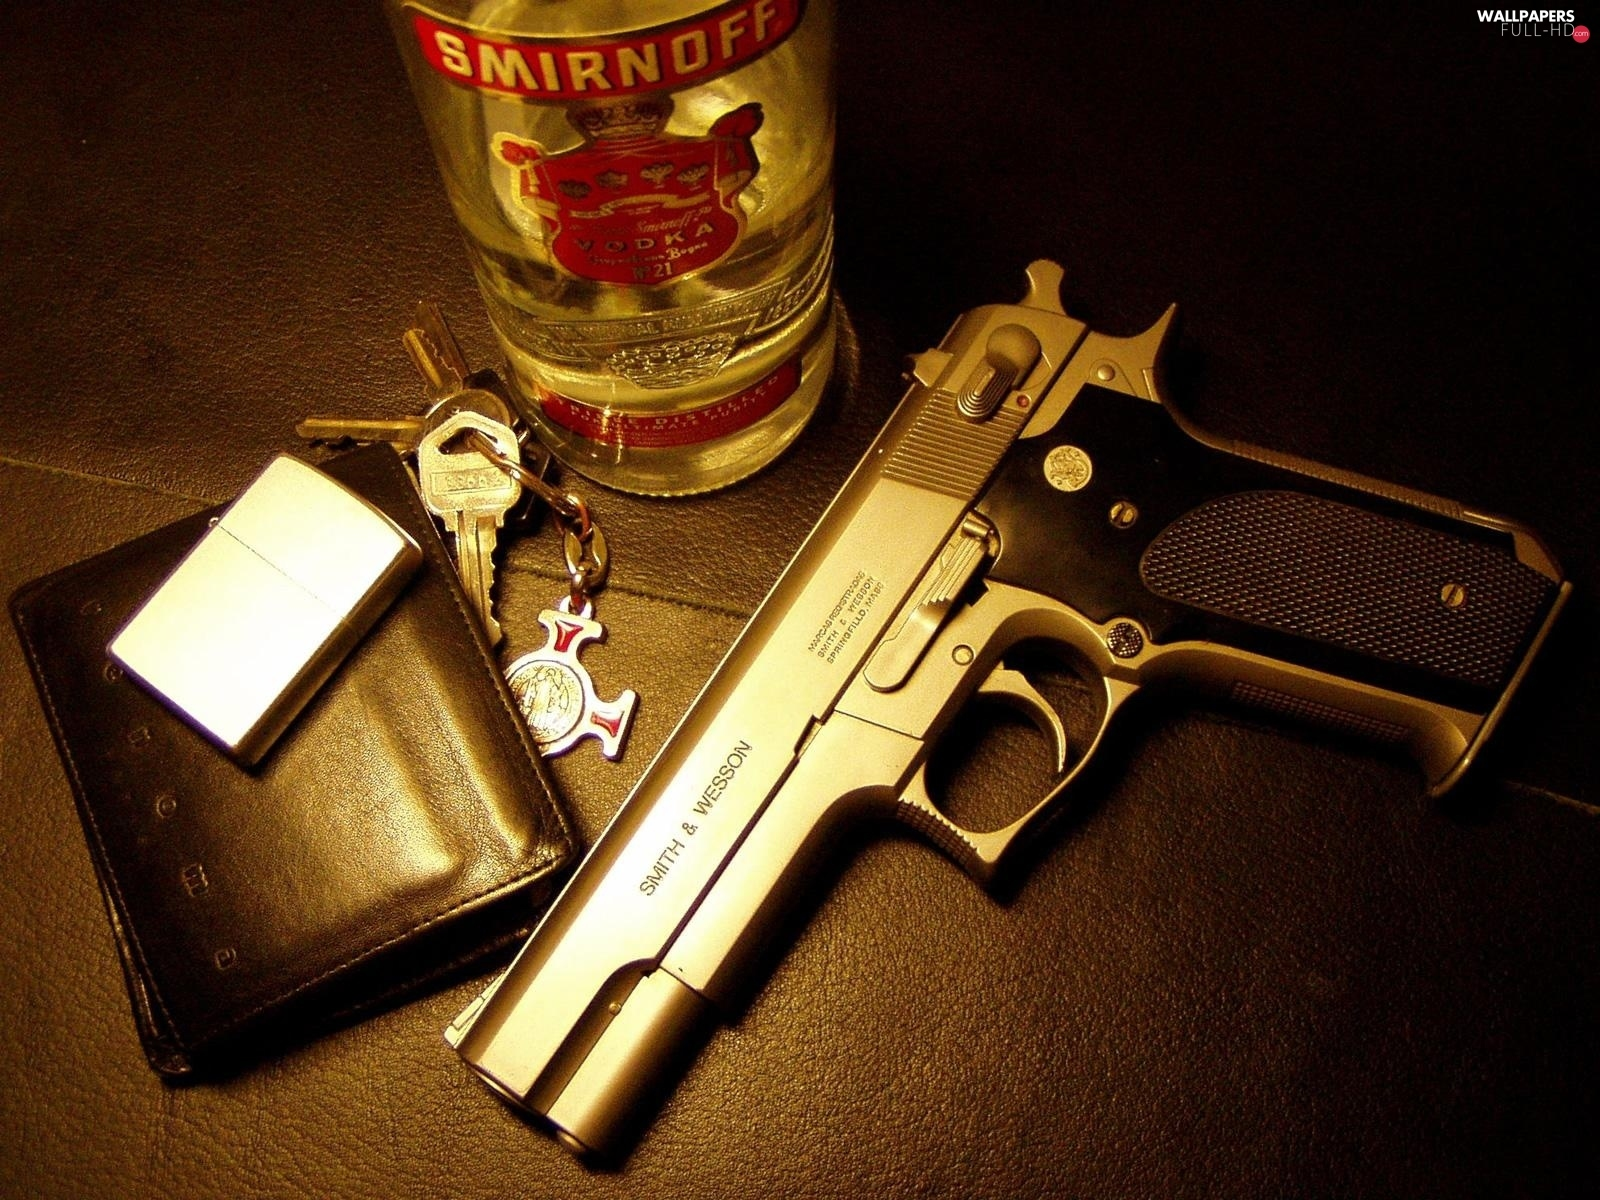 lighter, Gun, wallet, vodka, keys, Smirnoff